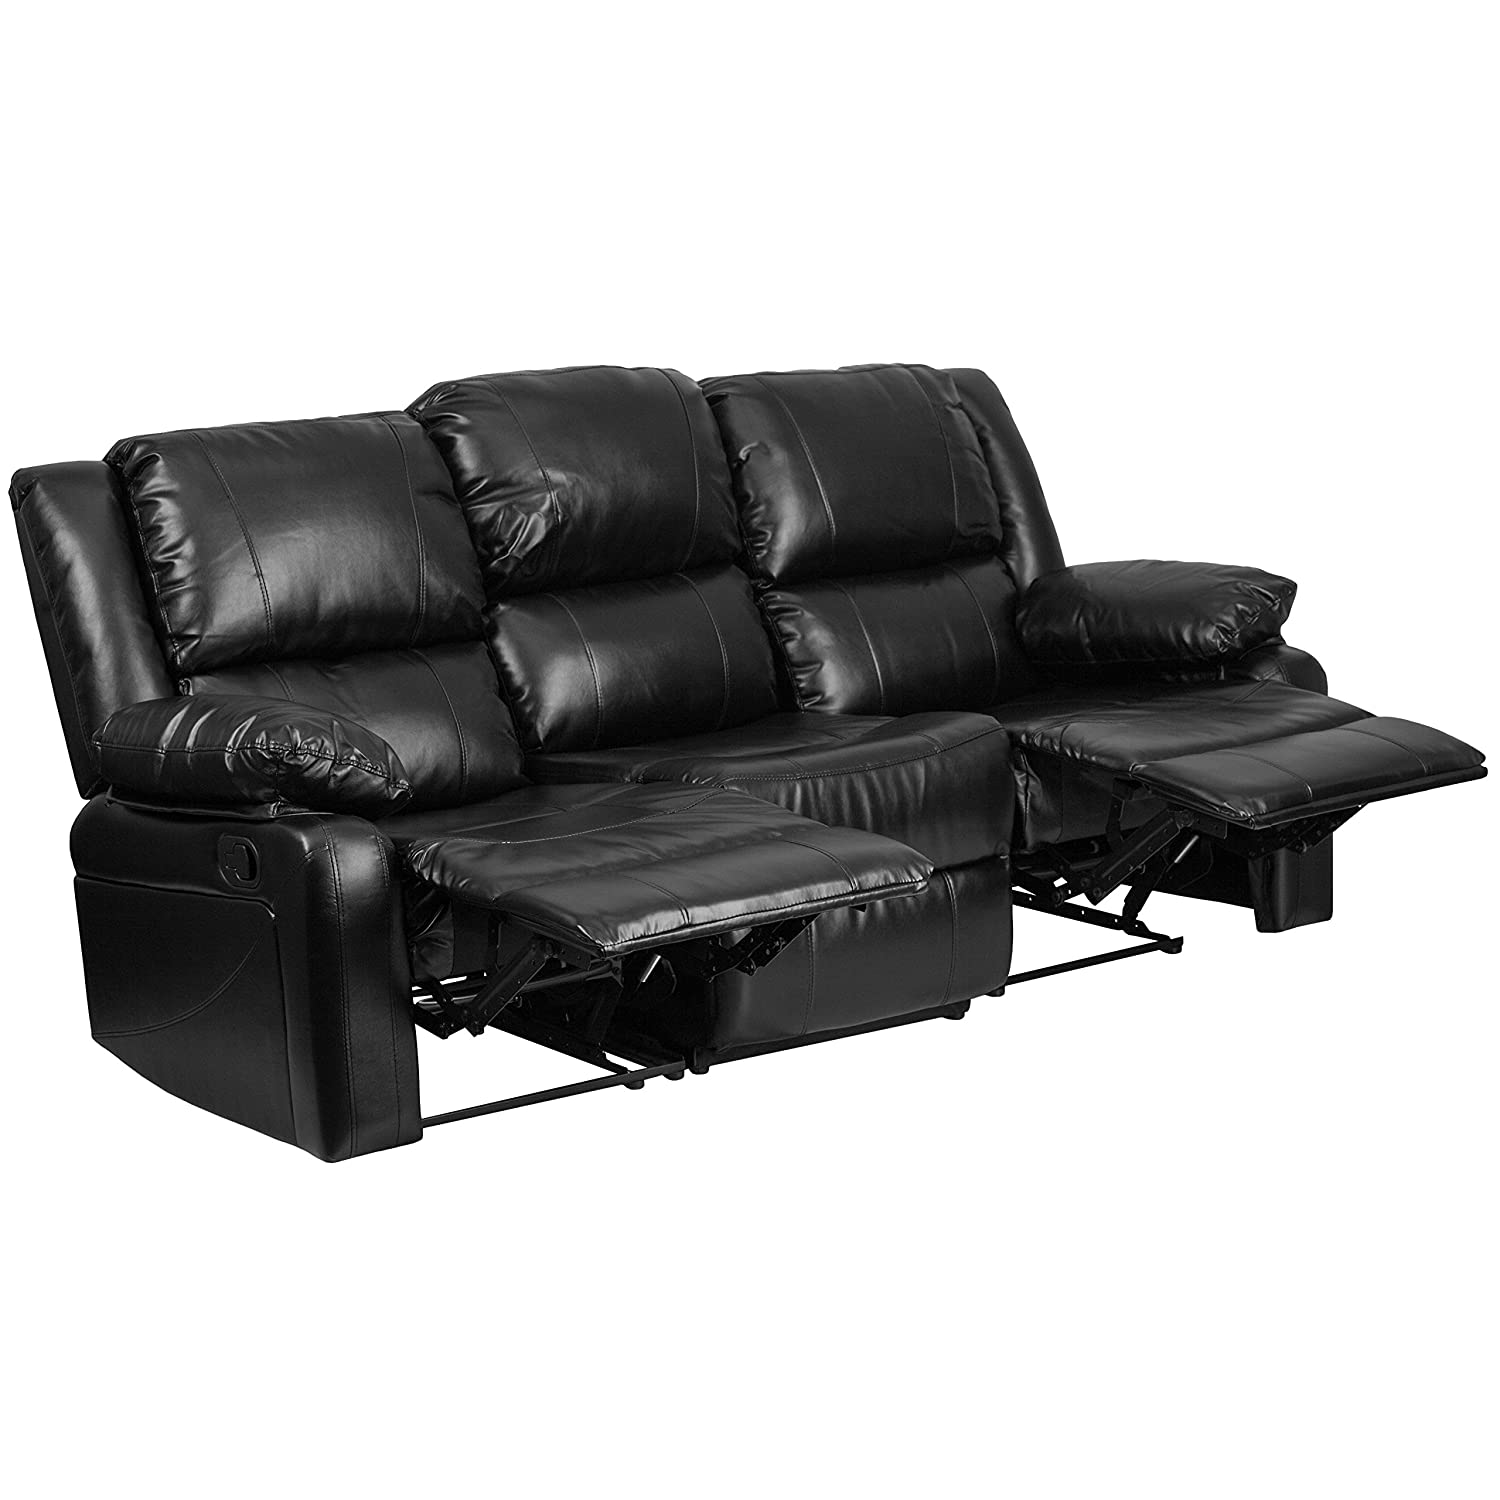 Amazon Com Flash Furniture Harmony Series Black Leather Sofa With